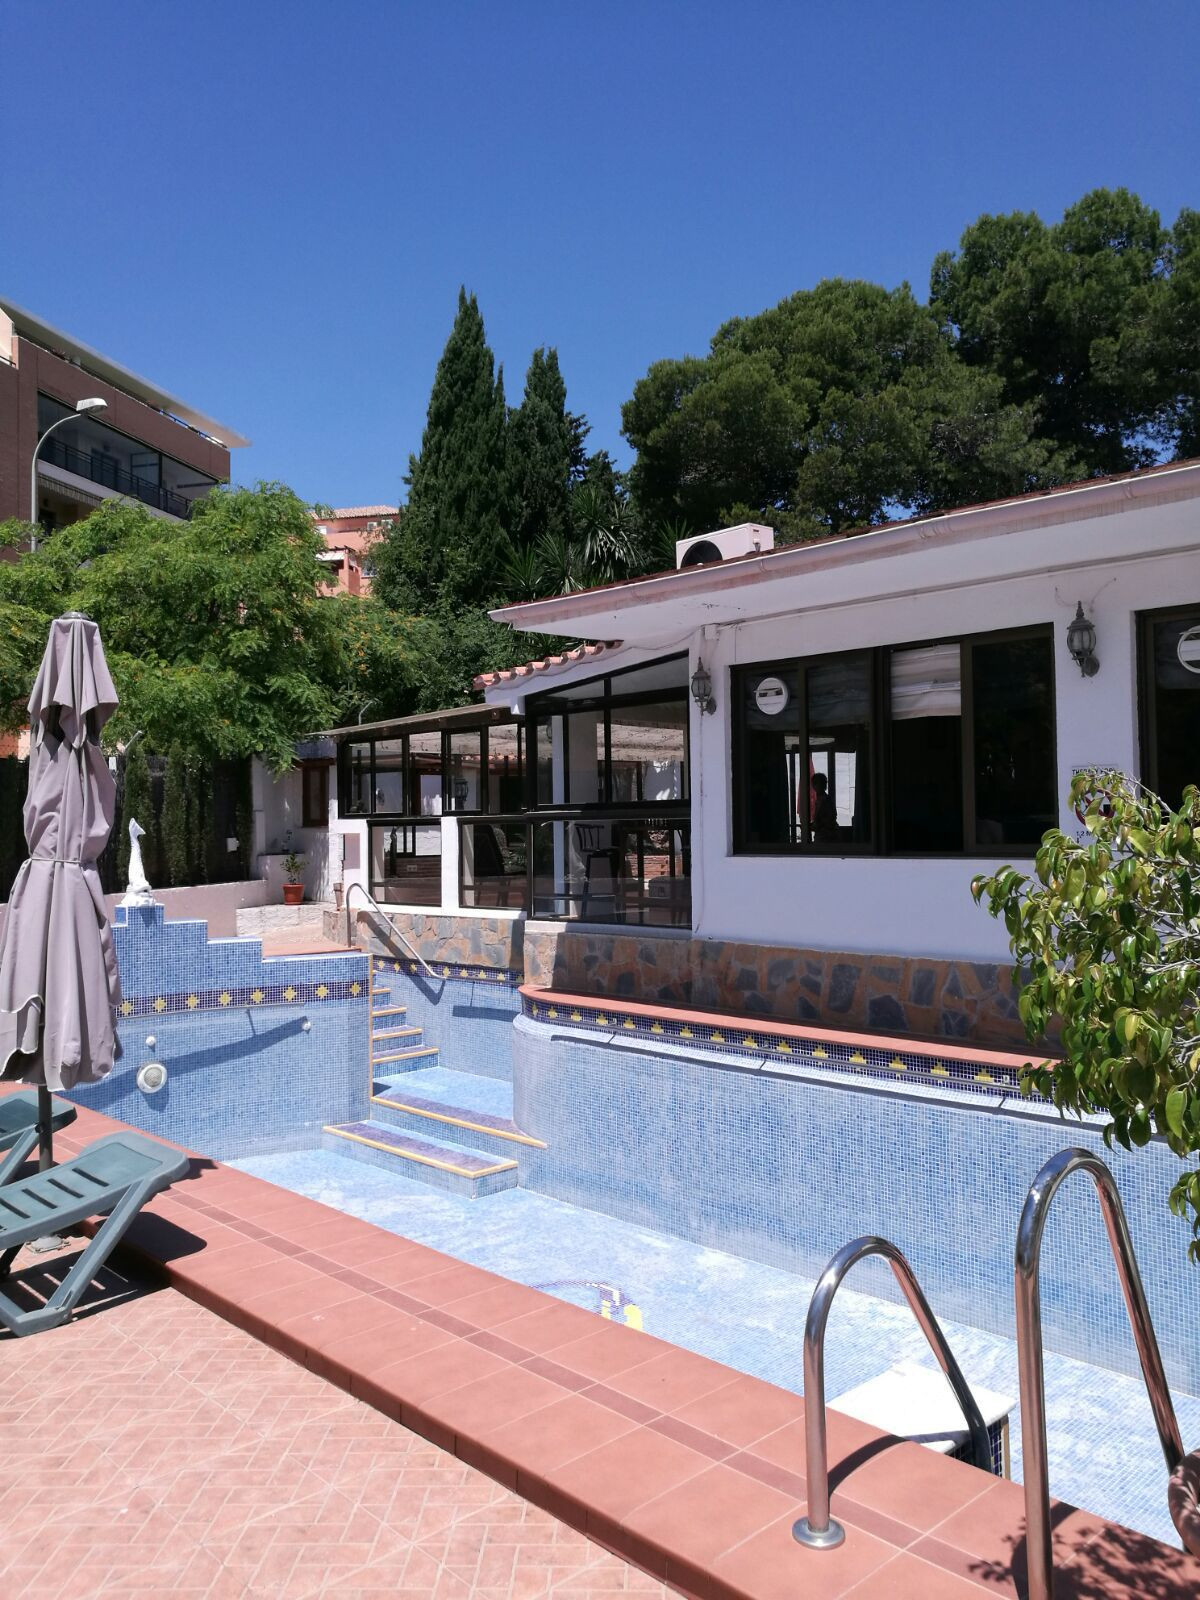 Detached, single story villa of individual character located in the El Pinillo area of Torremolinos., Spain